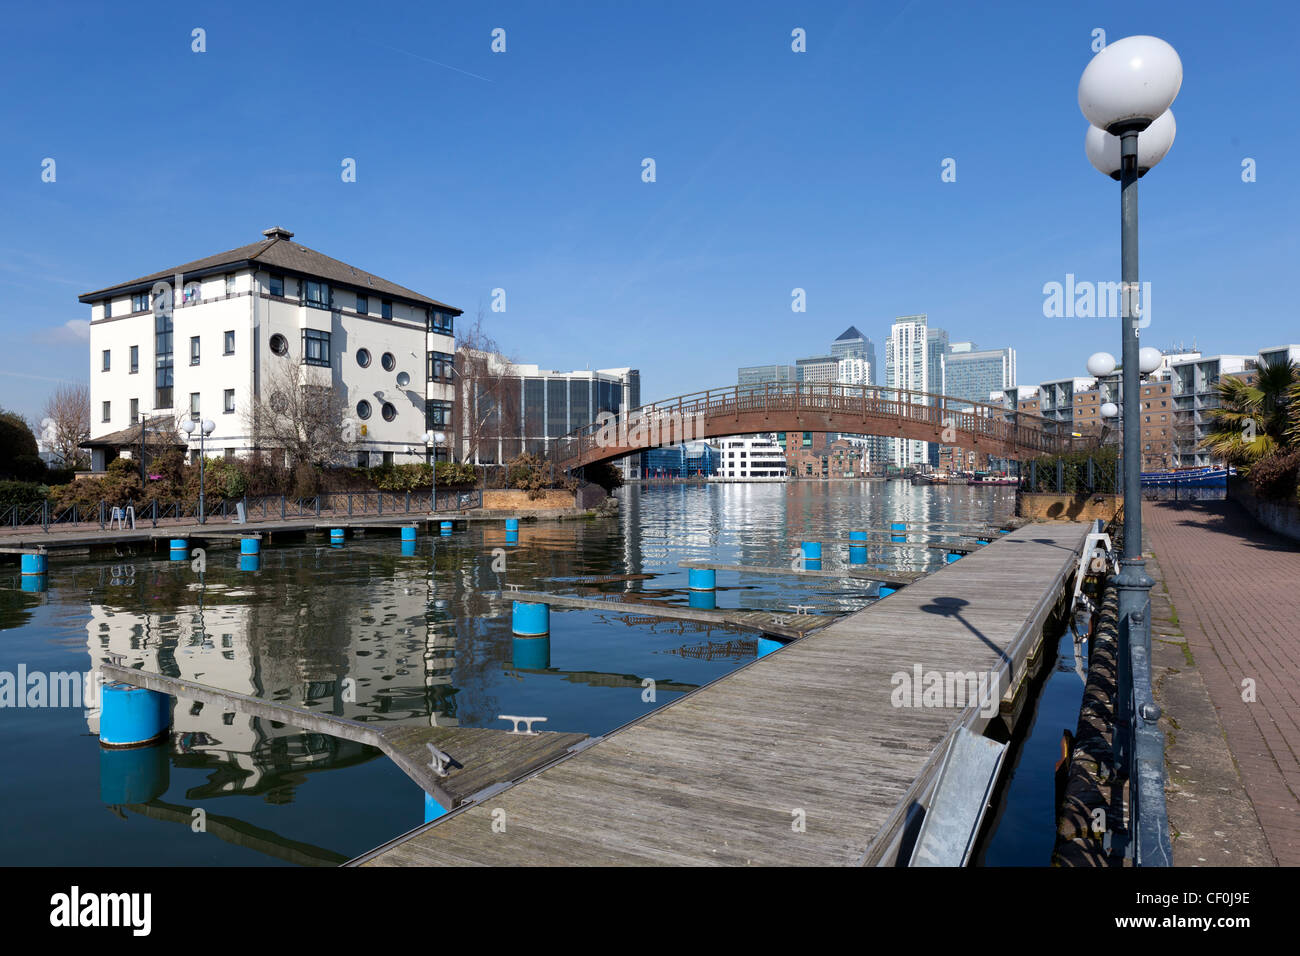 Clippers Quay marina, part of Millwall Outer Dock with Canary wharf in the background, Isle of Dogs, Tower Hamlets, - Stock Image